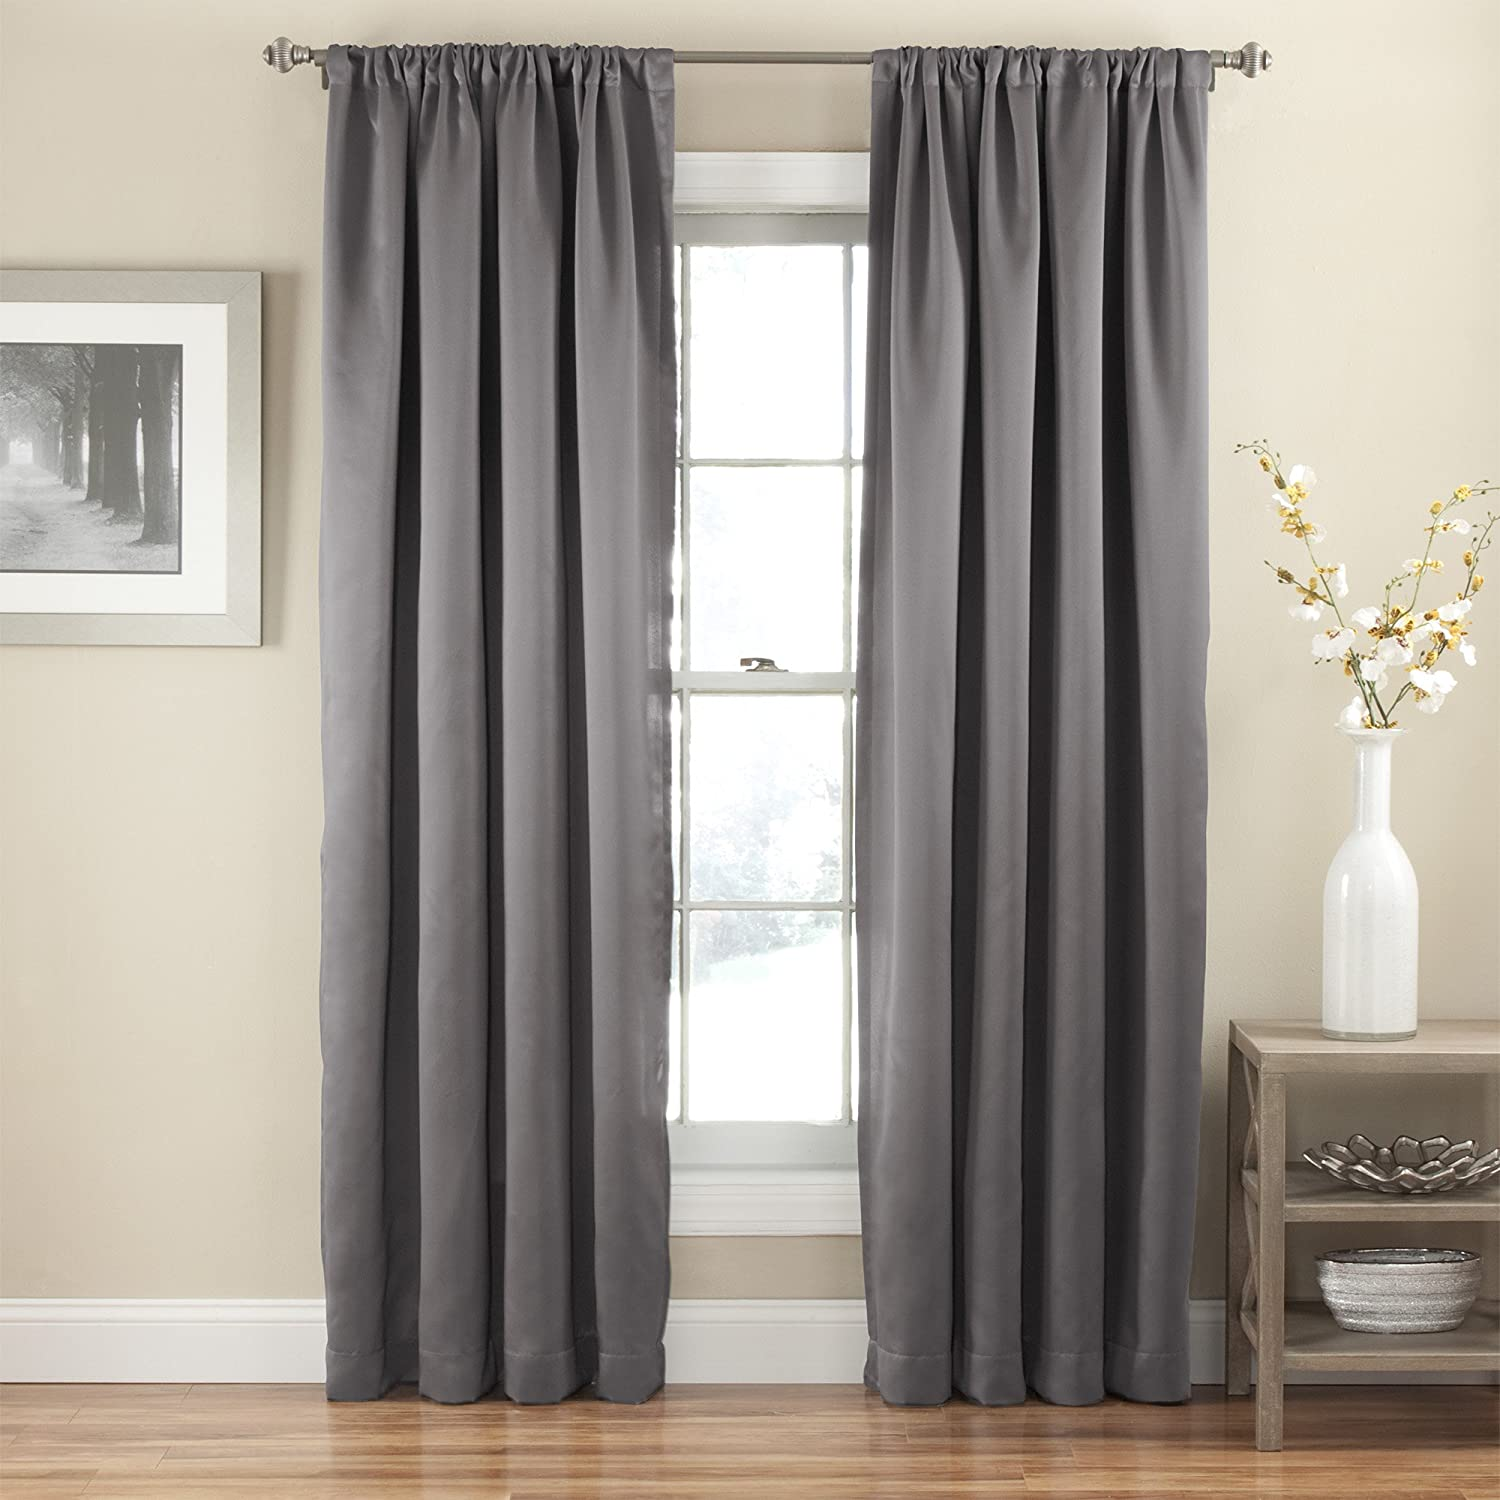 rod thermal new ideas blackout beautiful sale tan insulated curtain on deconovo curtains of elegant